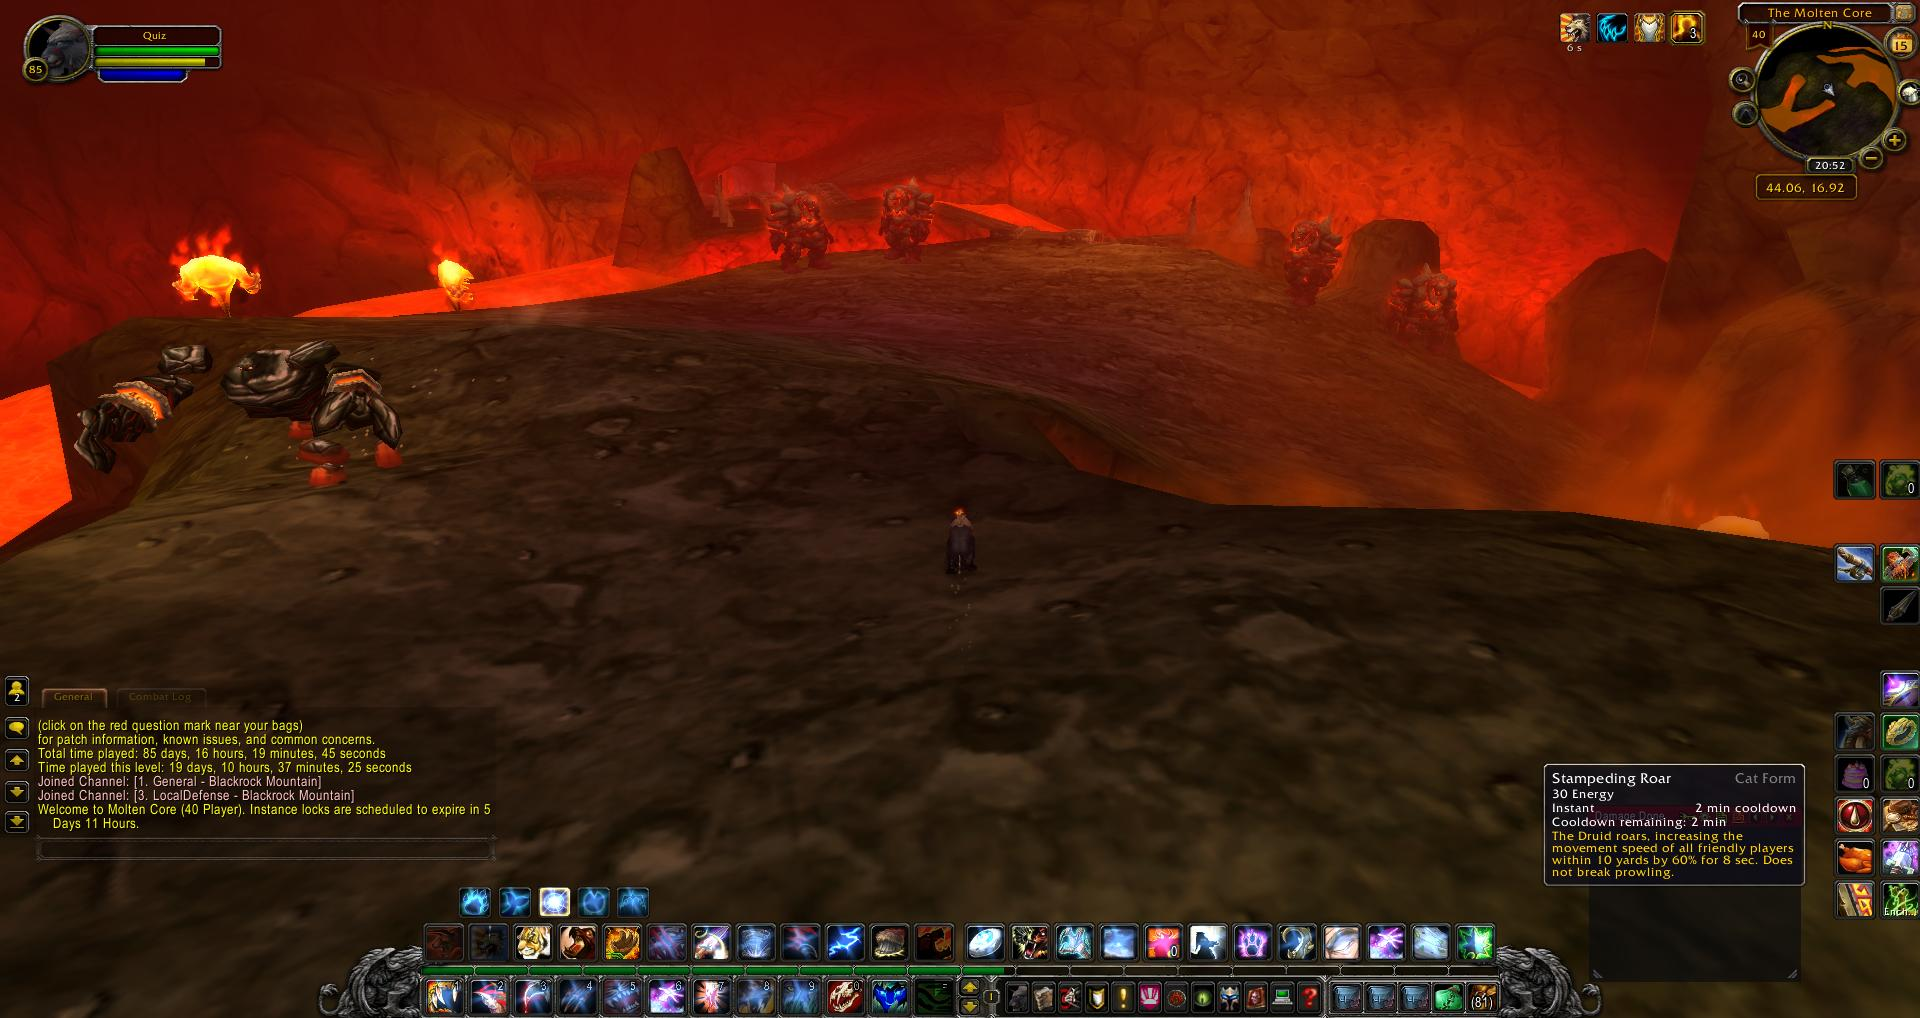 Molten Core wow wow screenshot